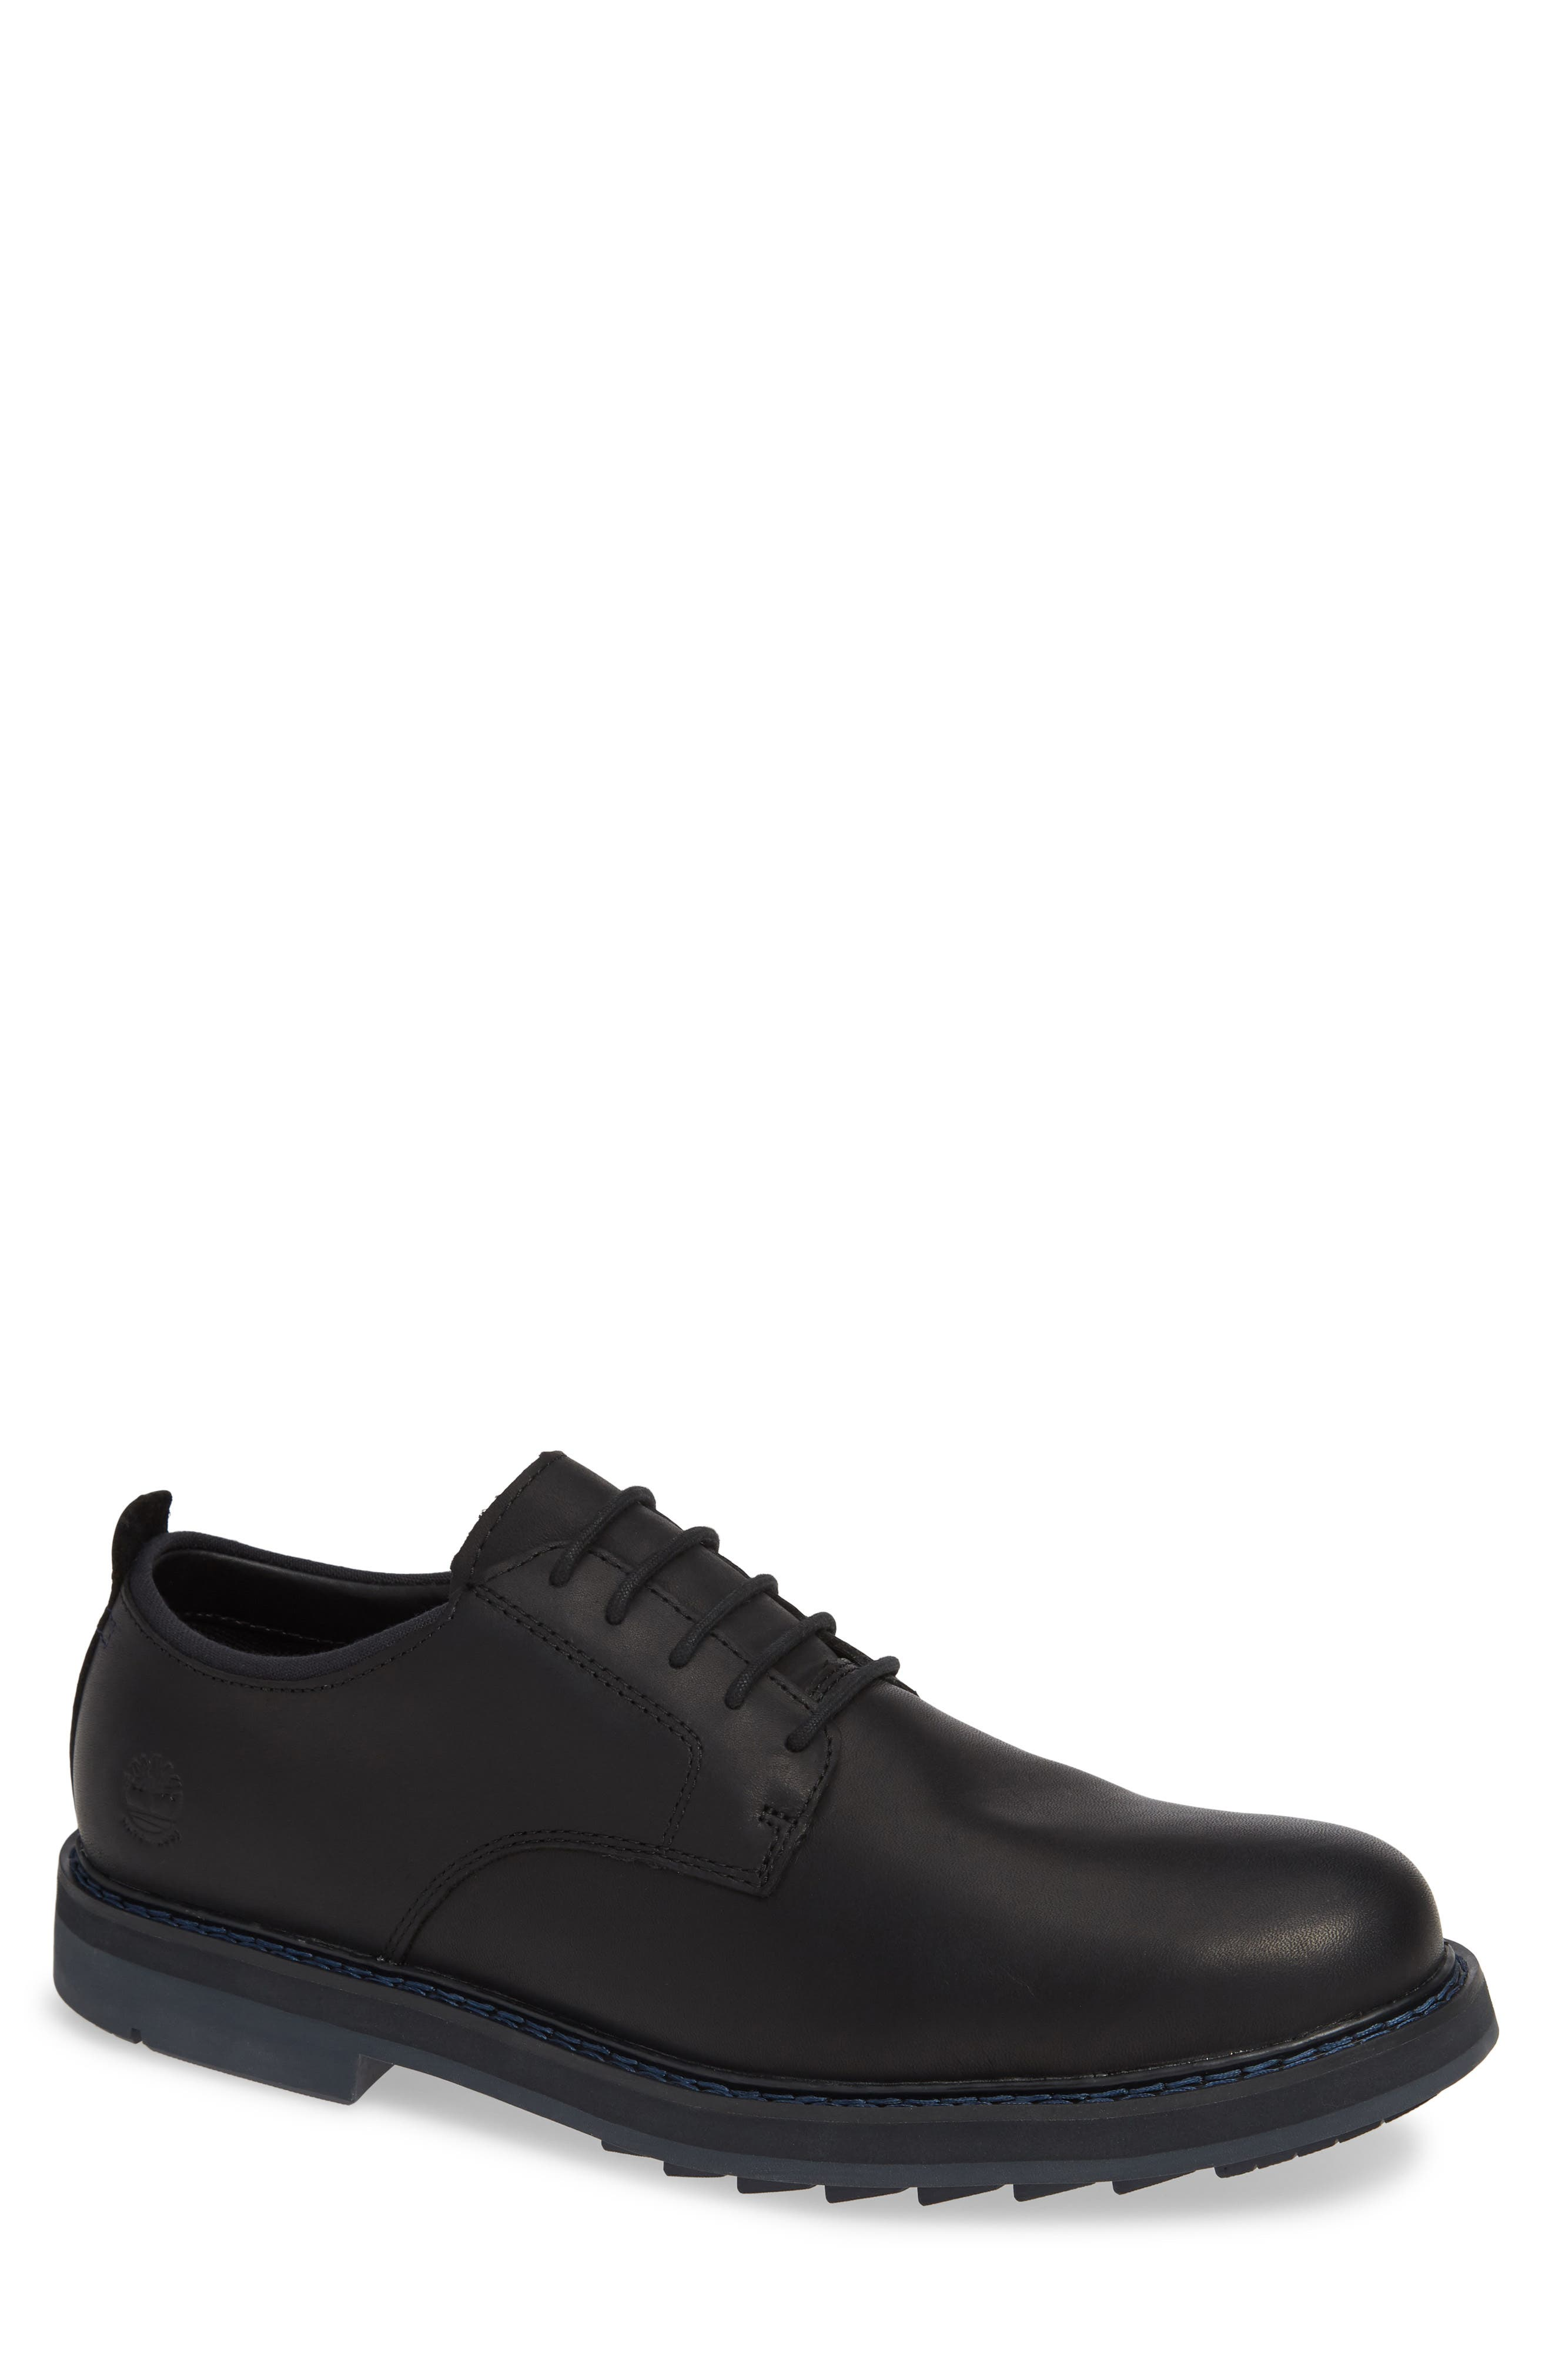 TIMBERLAND Squall Canyon Waterproof Plain Toe Derby, Main, color, BLACK LEATHER